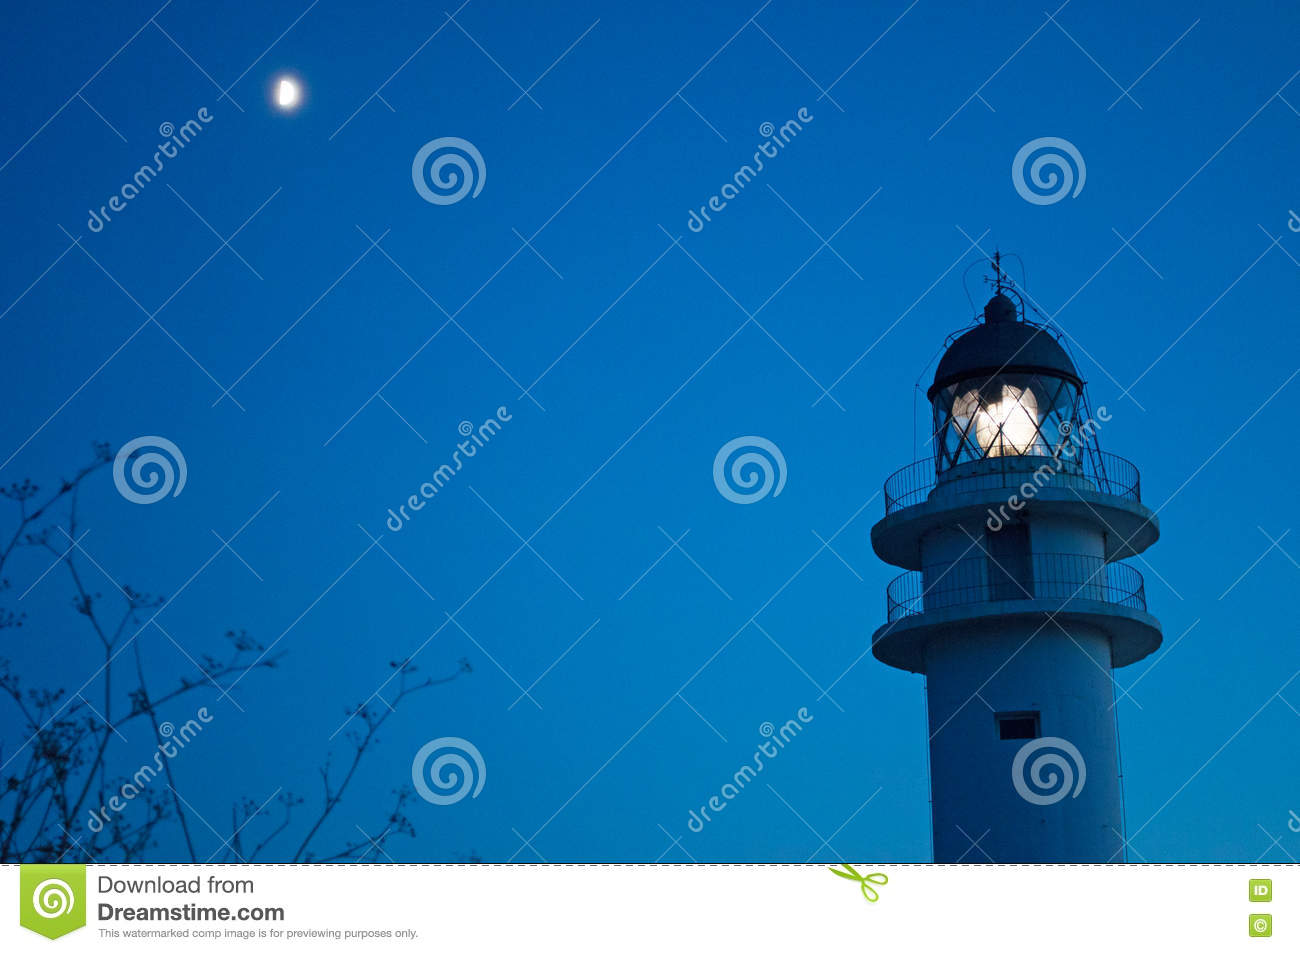 Formentera, Balearic Islands, Spain, Europe, lighthouse, Cap de Barbaria, sunset point, night, moon, moonlight, nature, landscape